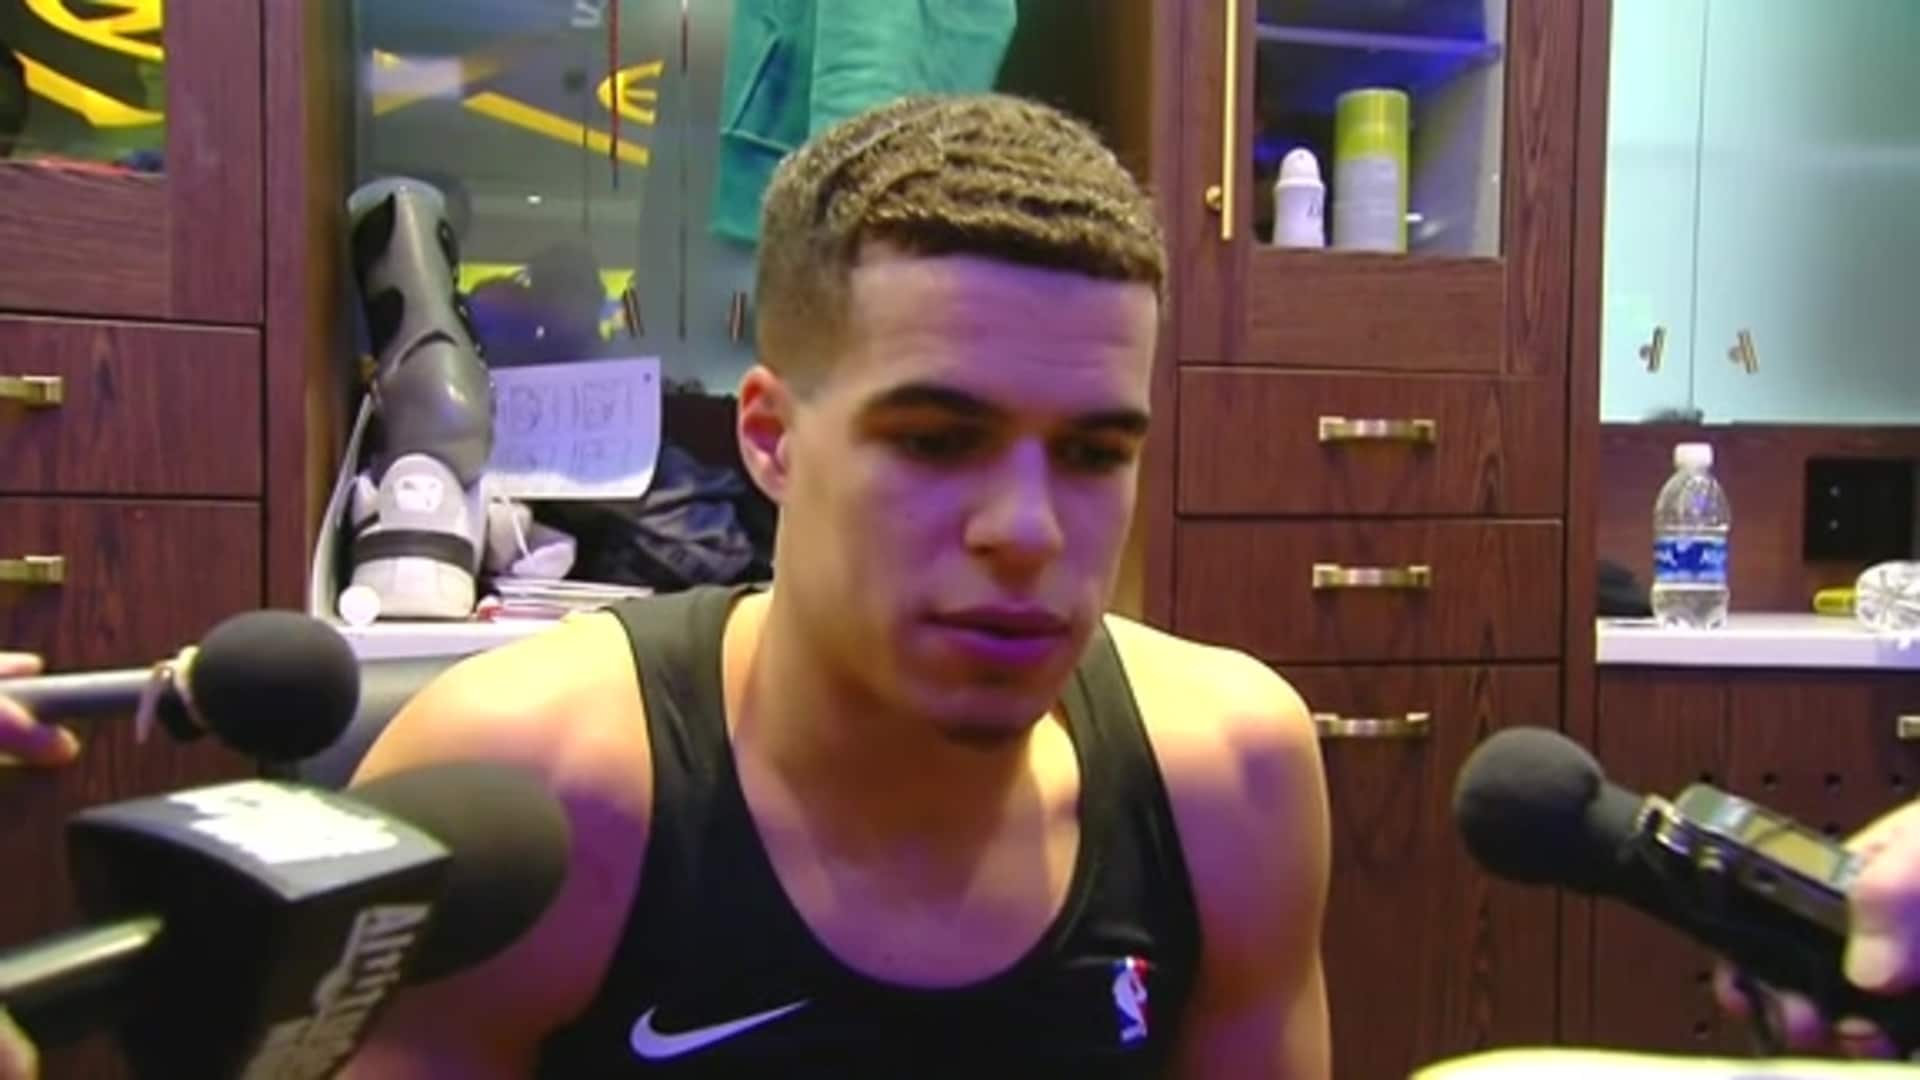 Nuggets vs. Hornets: Michael Porter Jr. postgame interview